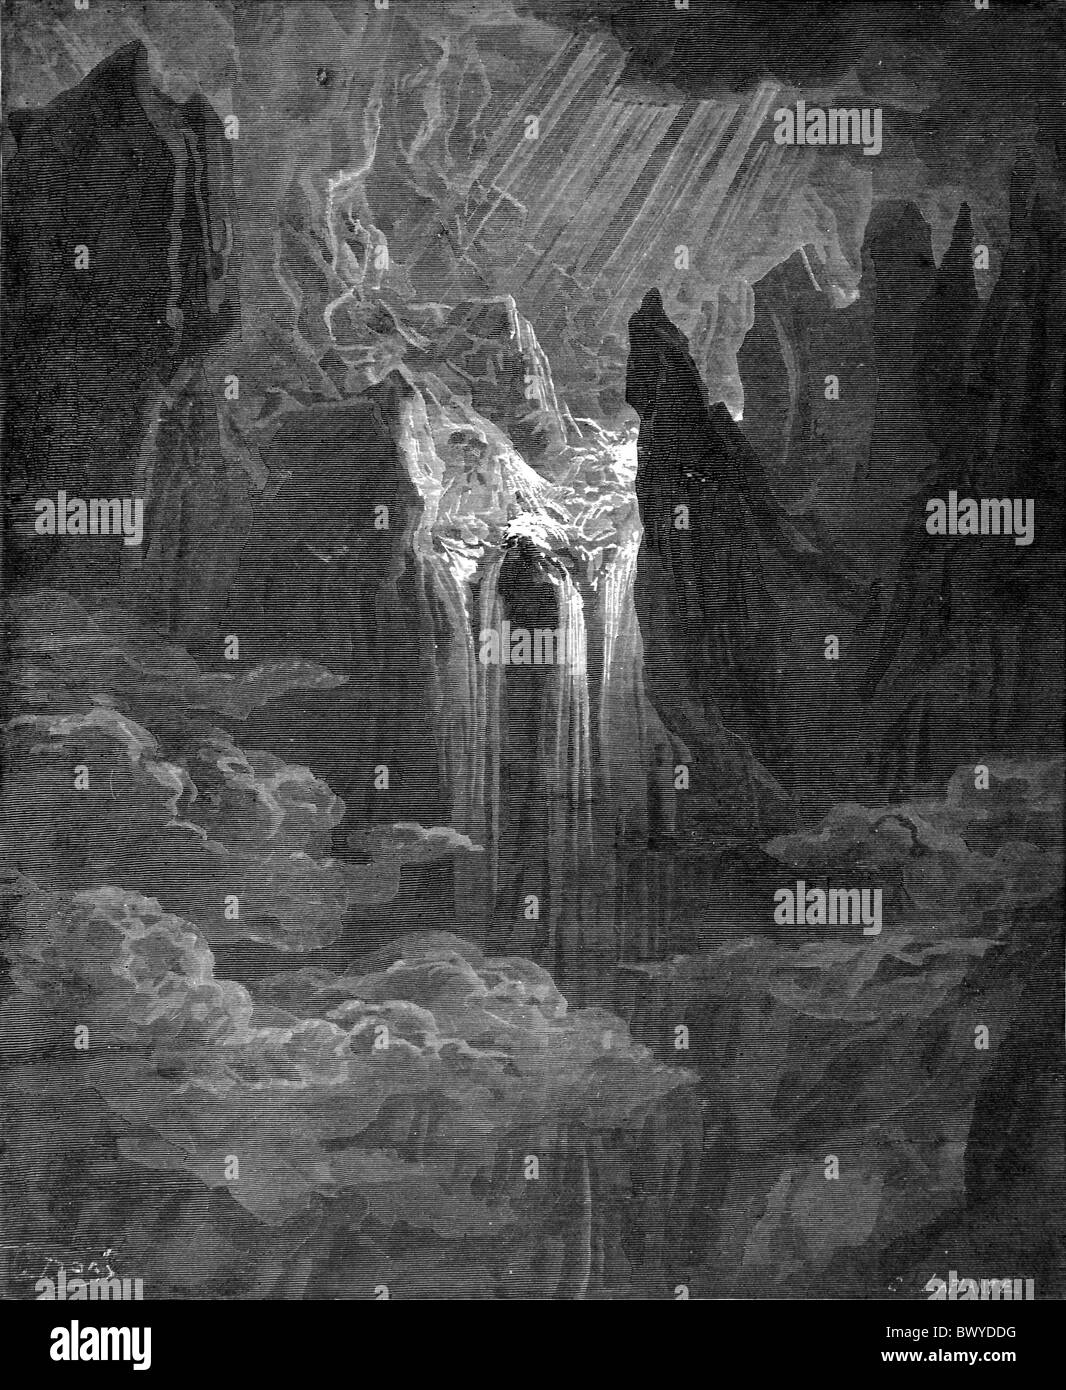 Gustave Doré; The Gathering of the Waters at the Creation from John Milton's Paradise Lost; Black and White - Stock Image